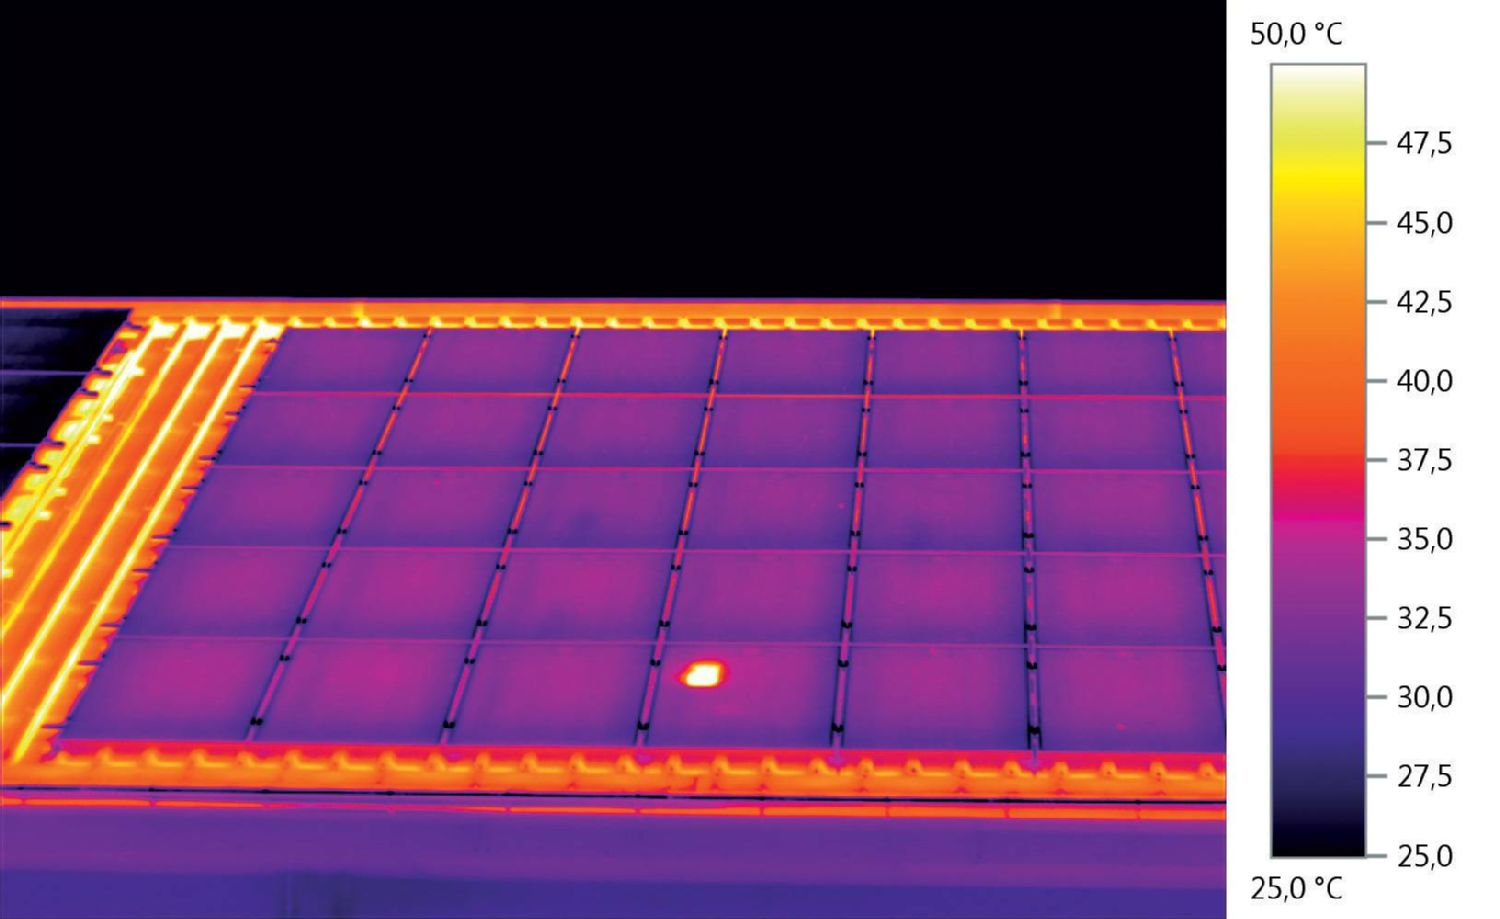 Thermal image of photovoltaic plant with defect